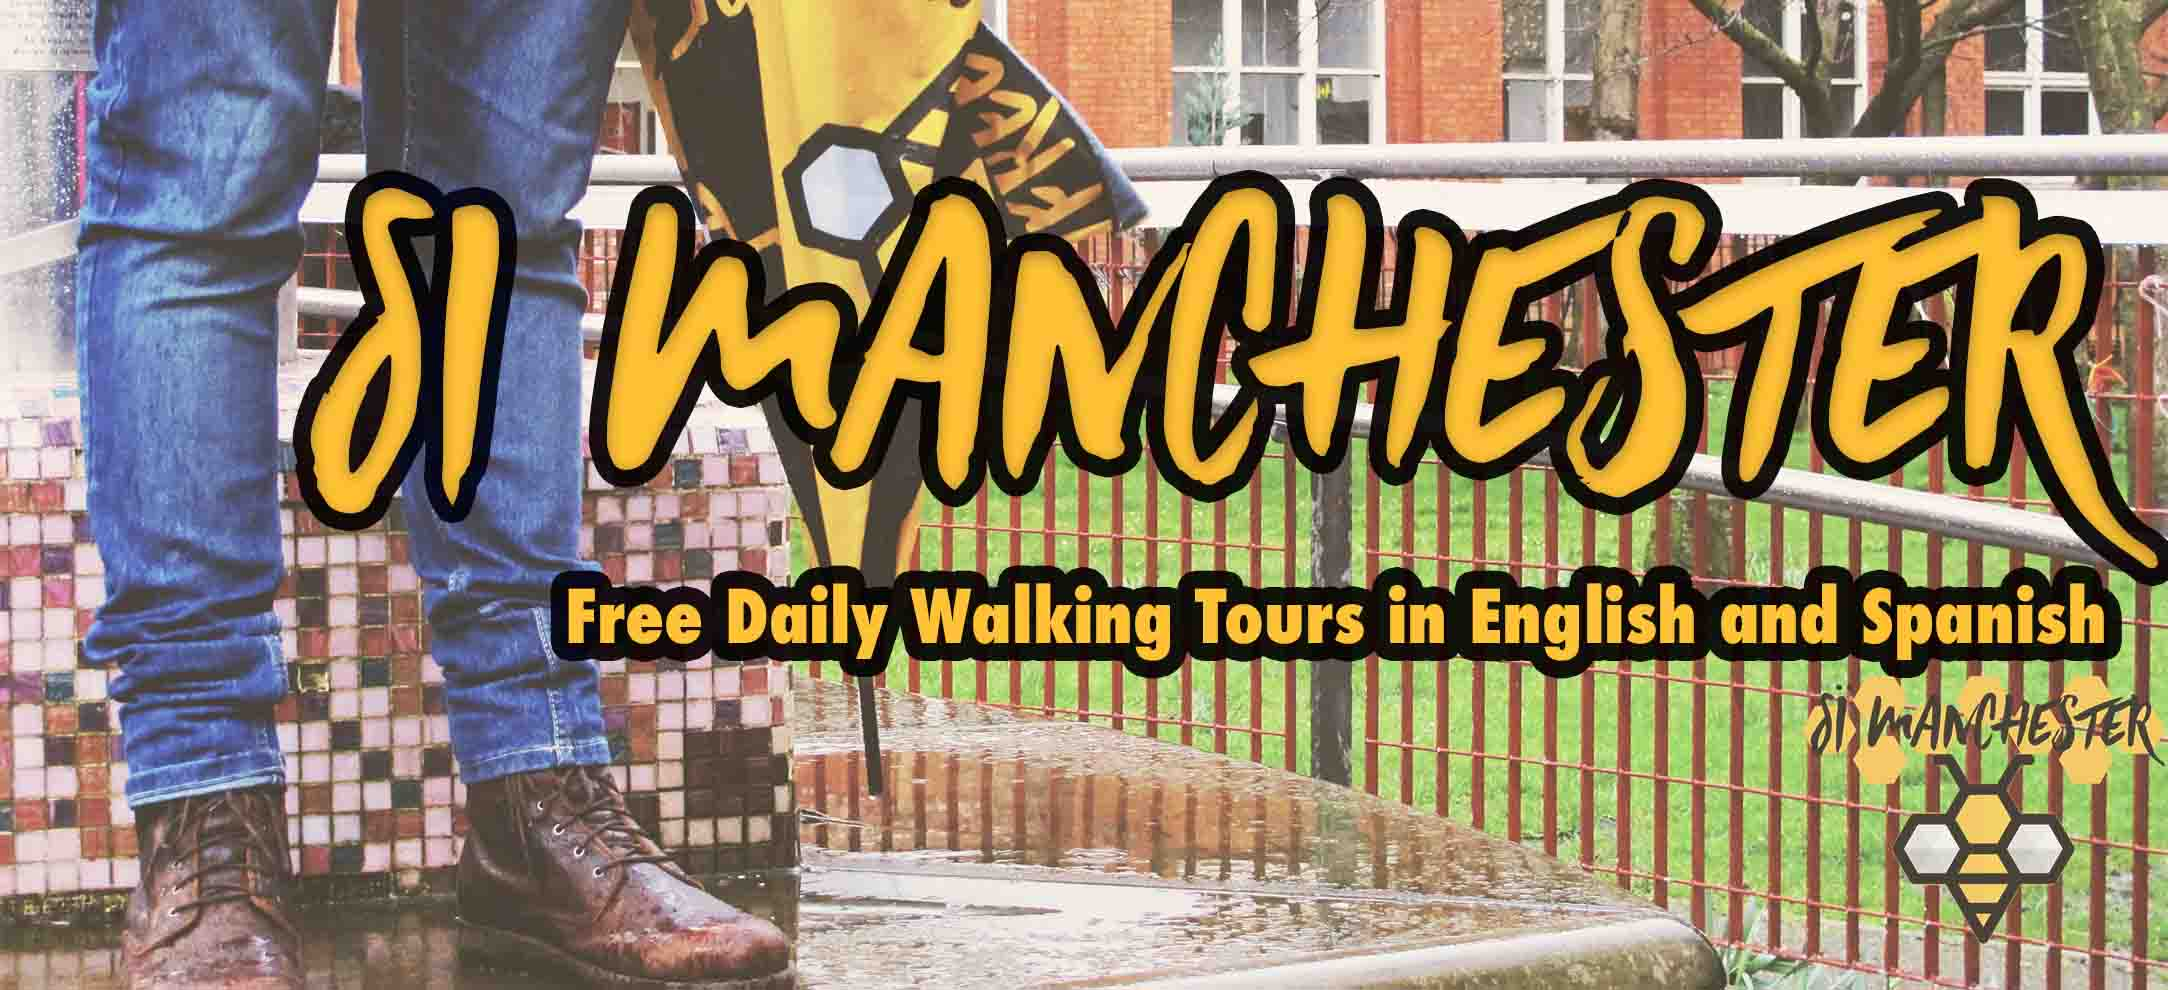 Free Tour Manchester  - free tour manchester | Si Manchester free tour